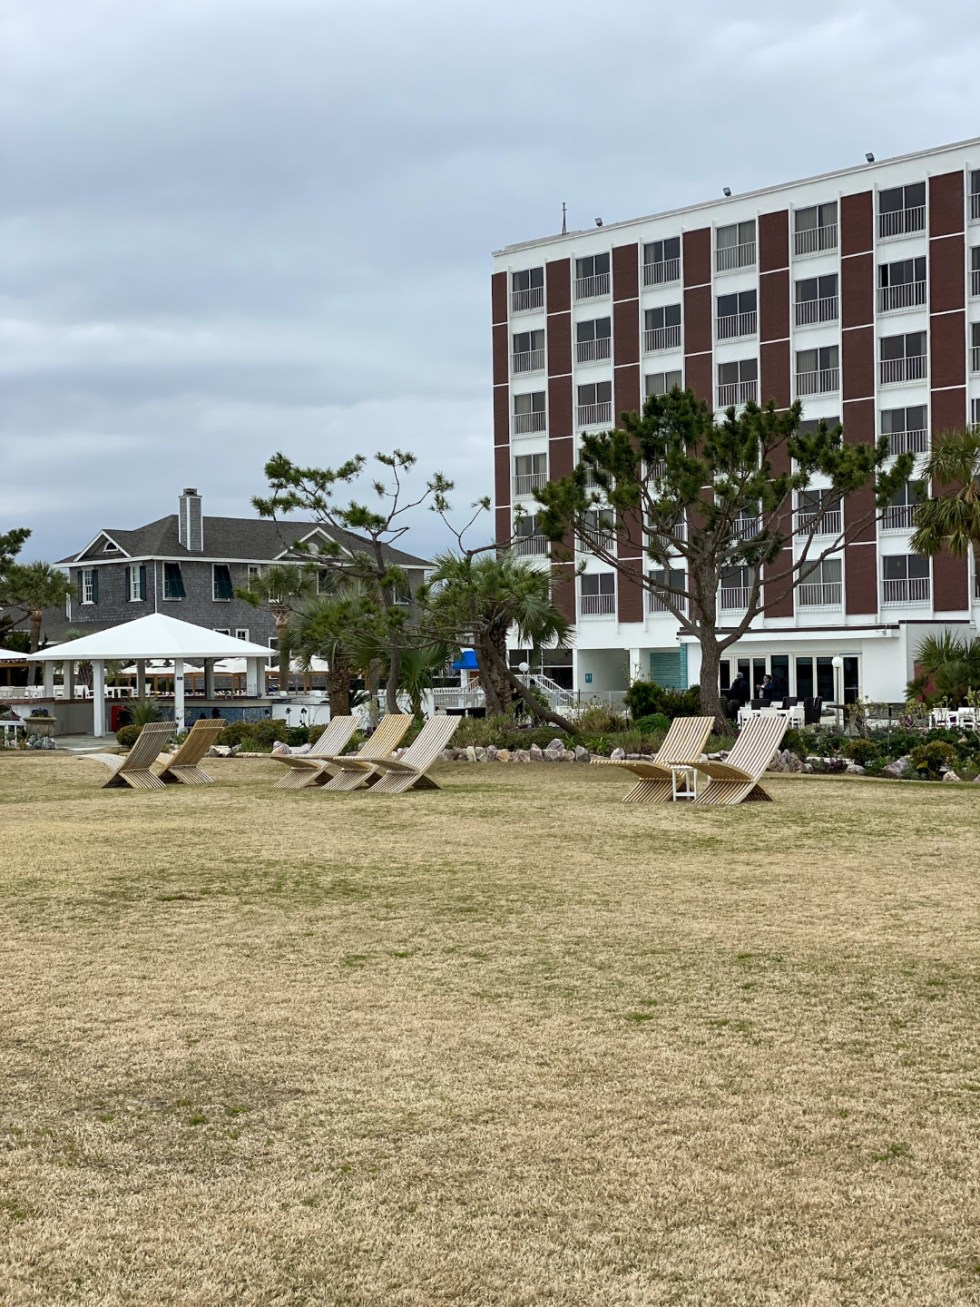 A Spring Weekend in Wilmington, NC: the Best Things to Do - I'm Fixin' To - @imfixintoblog |Weekend in Wilmington by popular NC travel blog, I'm Fixin' To: image of wooden lounge chairs on the grass.